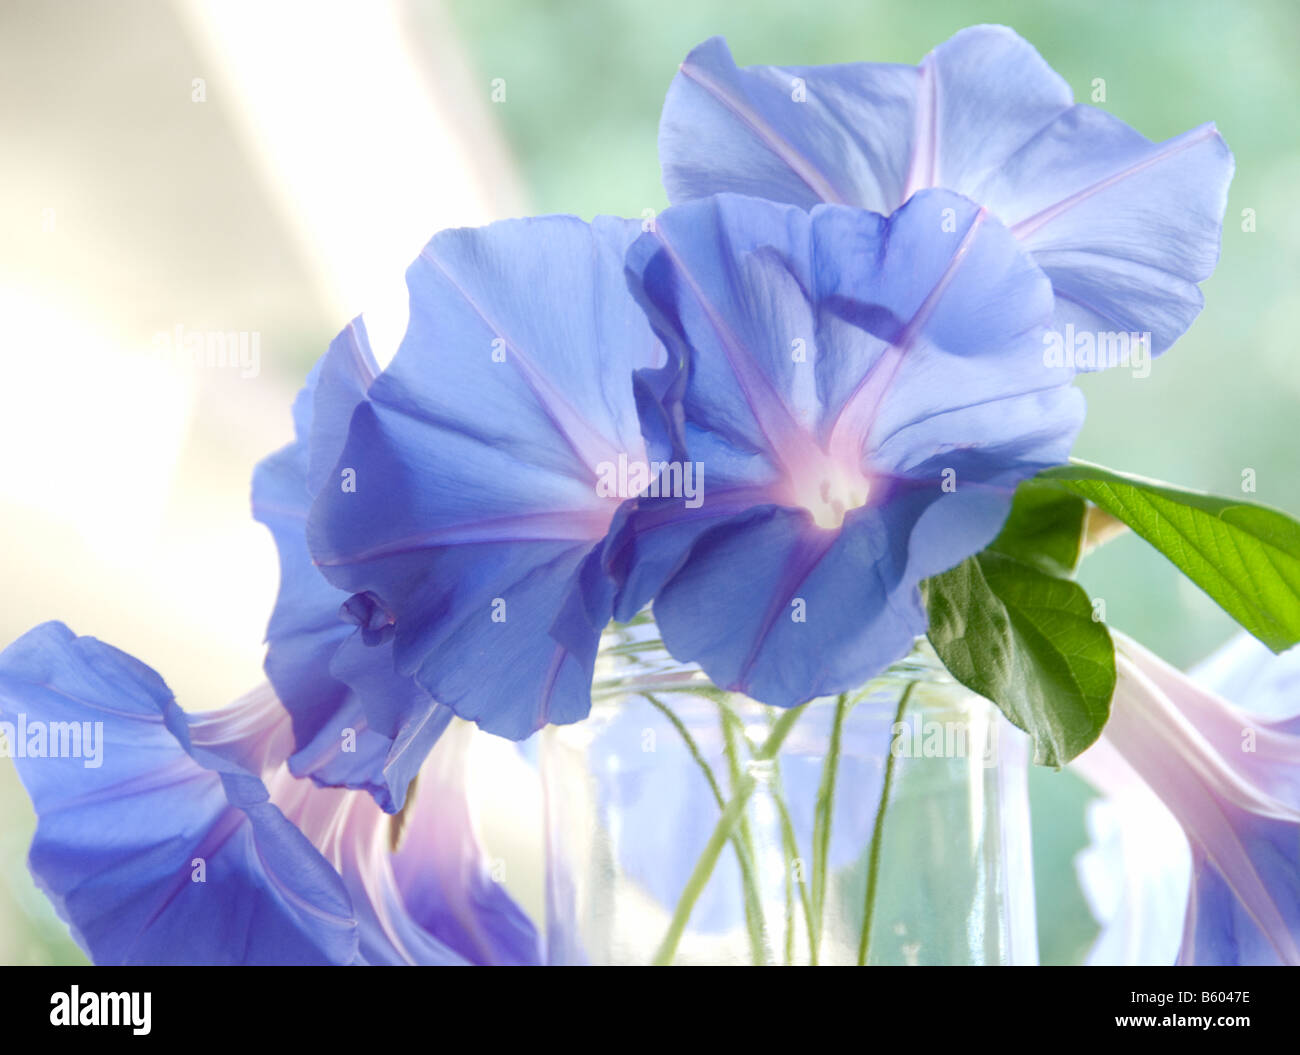 Beautiful blue flowers in the sunlight in the morning, in a jar with a home in the background. - Stock Image